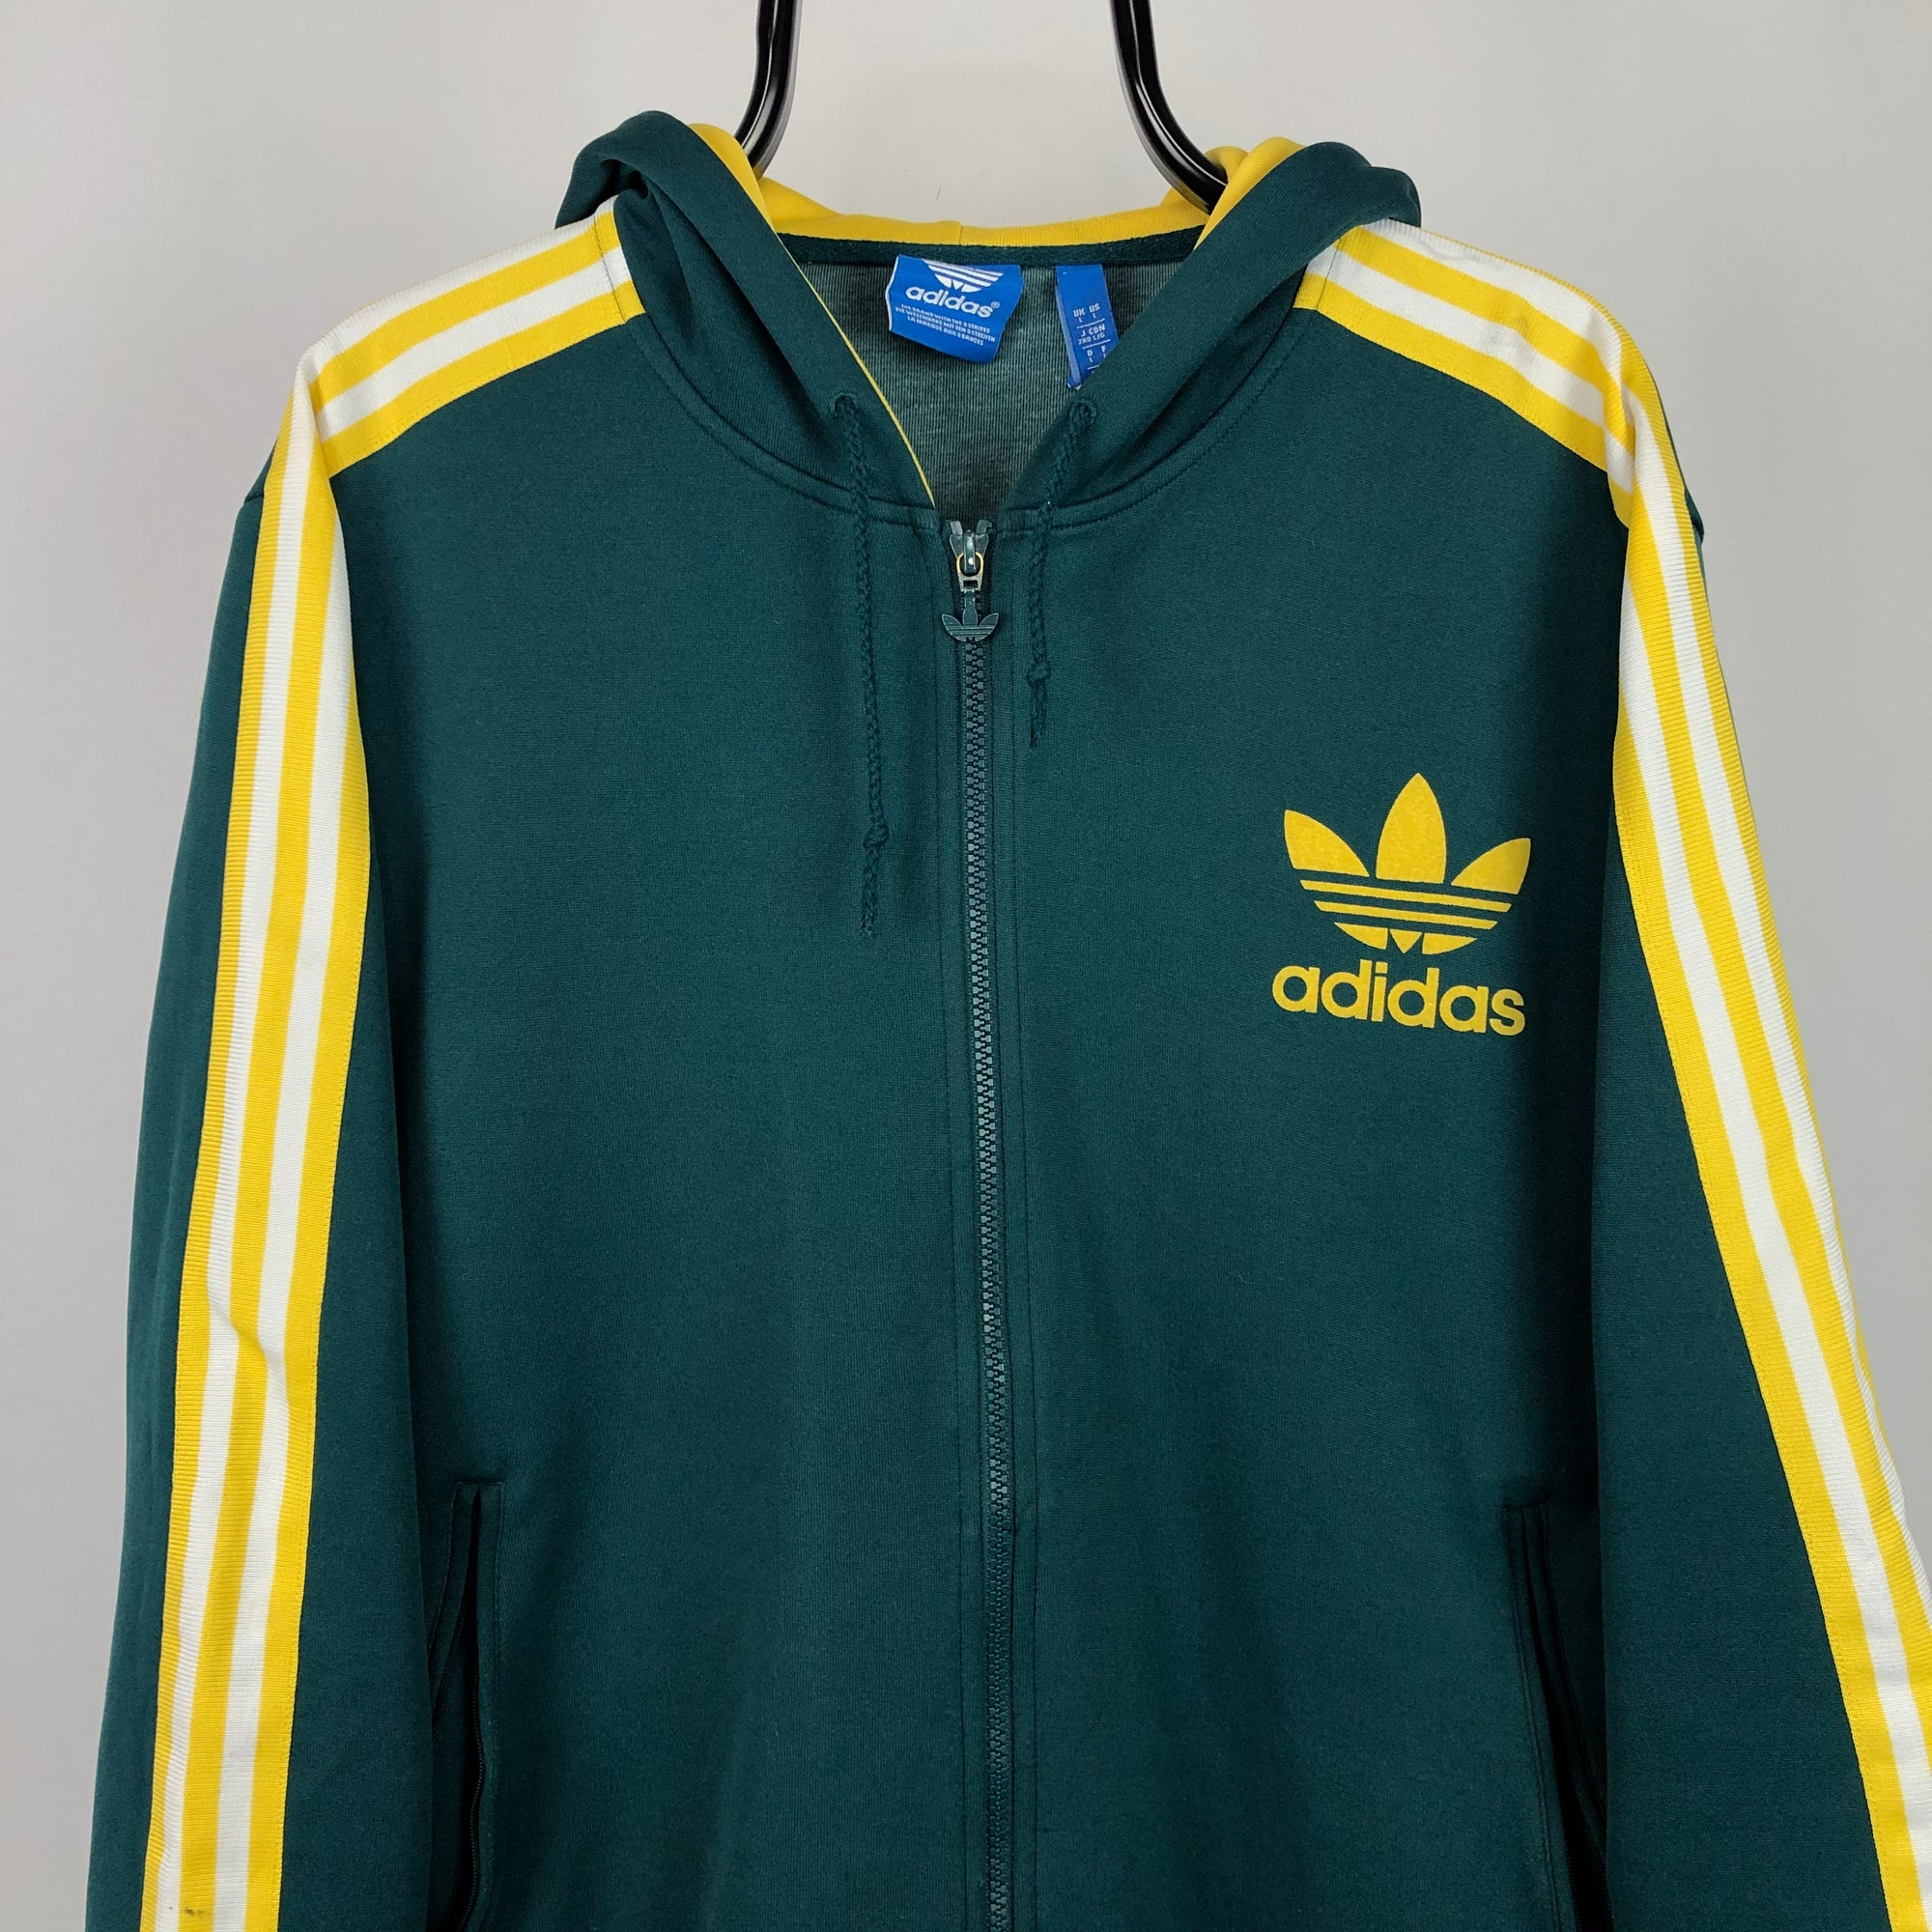 Adidas Hooded Track Jacket in Green/Yellow/White - Men's Large/Women's XL